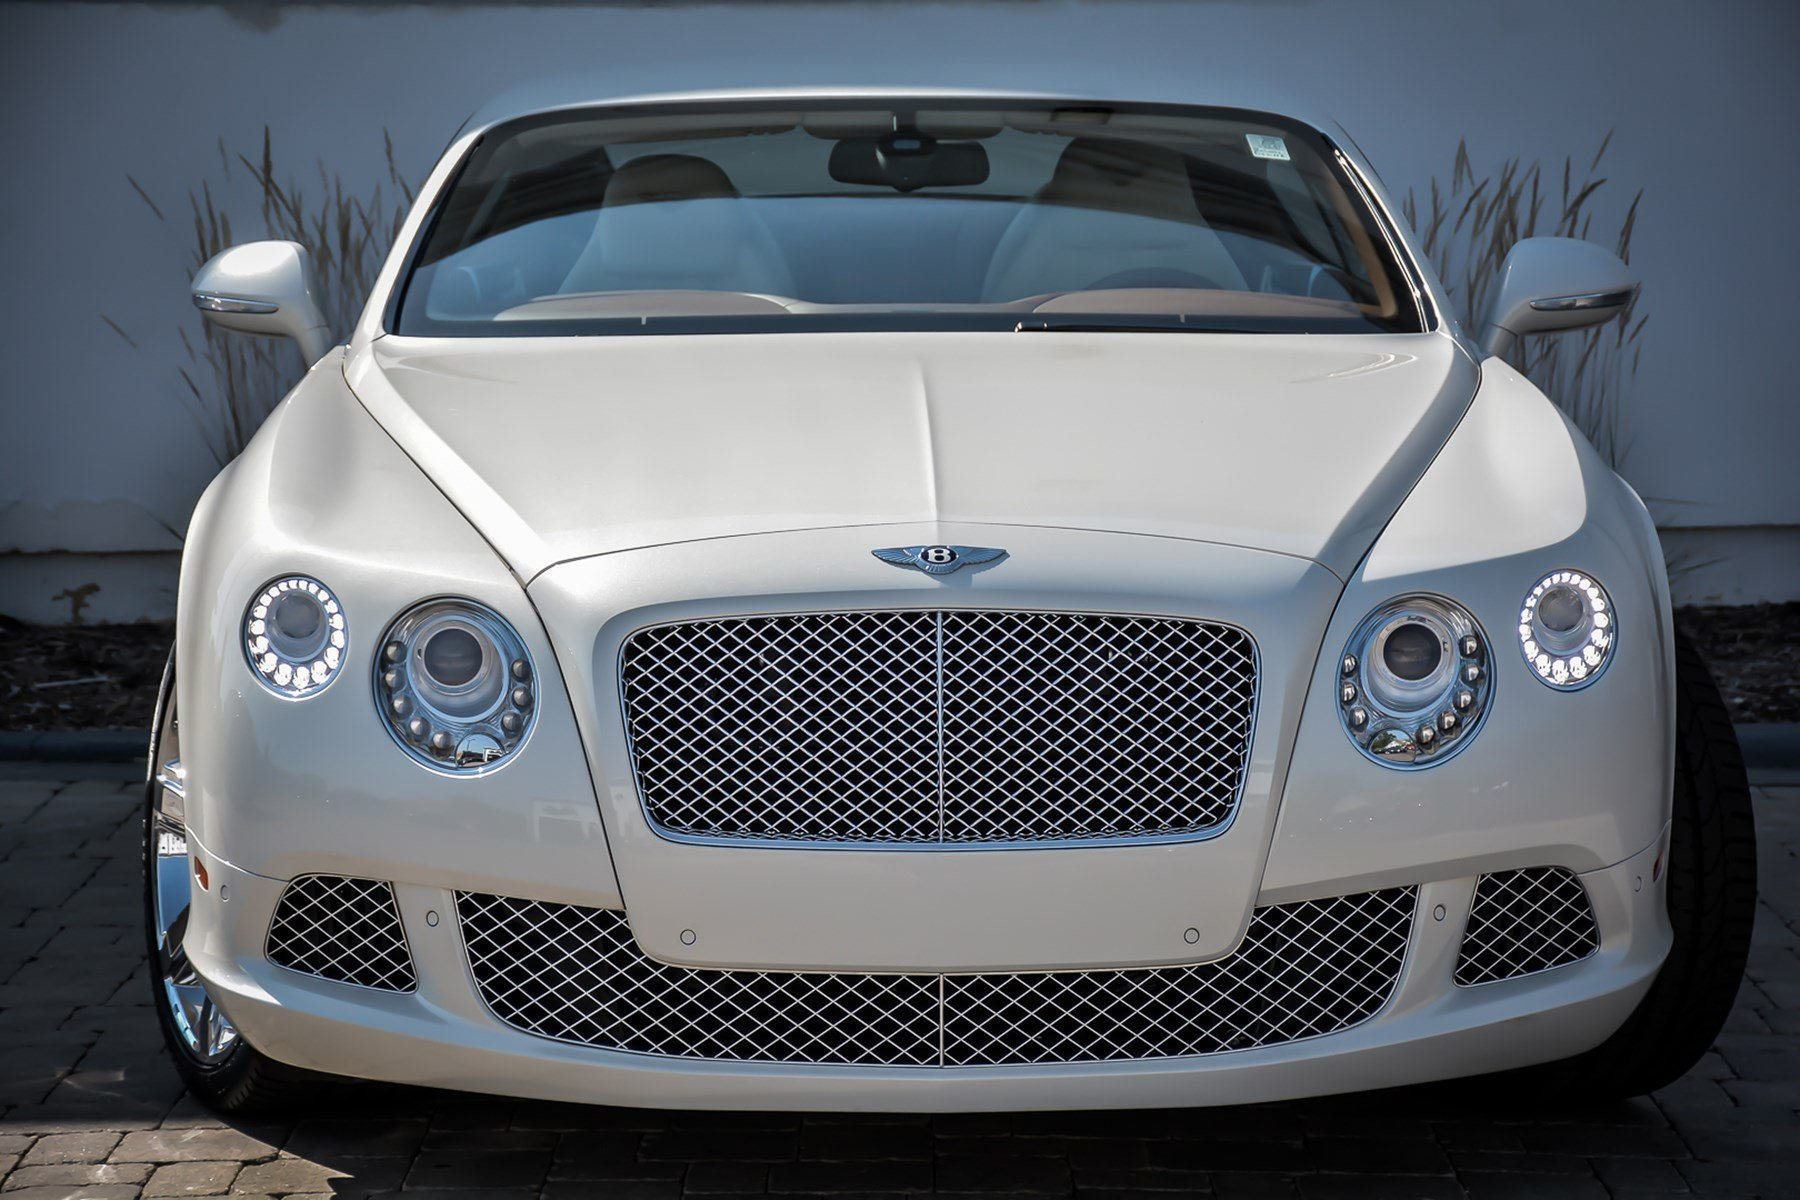 Pre Owned 2012 Bentley Continental GT With Navigation 2dr Car in